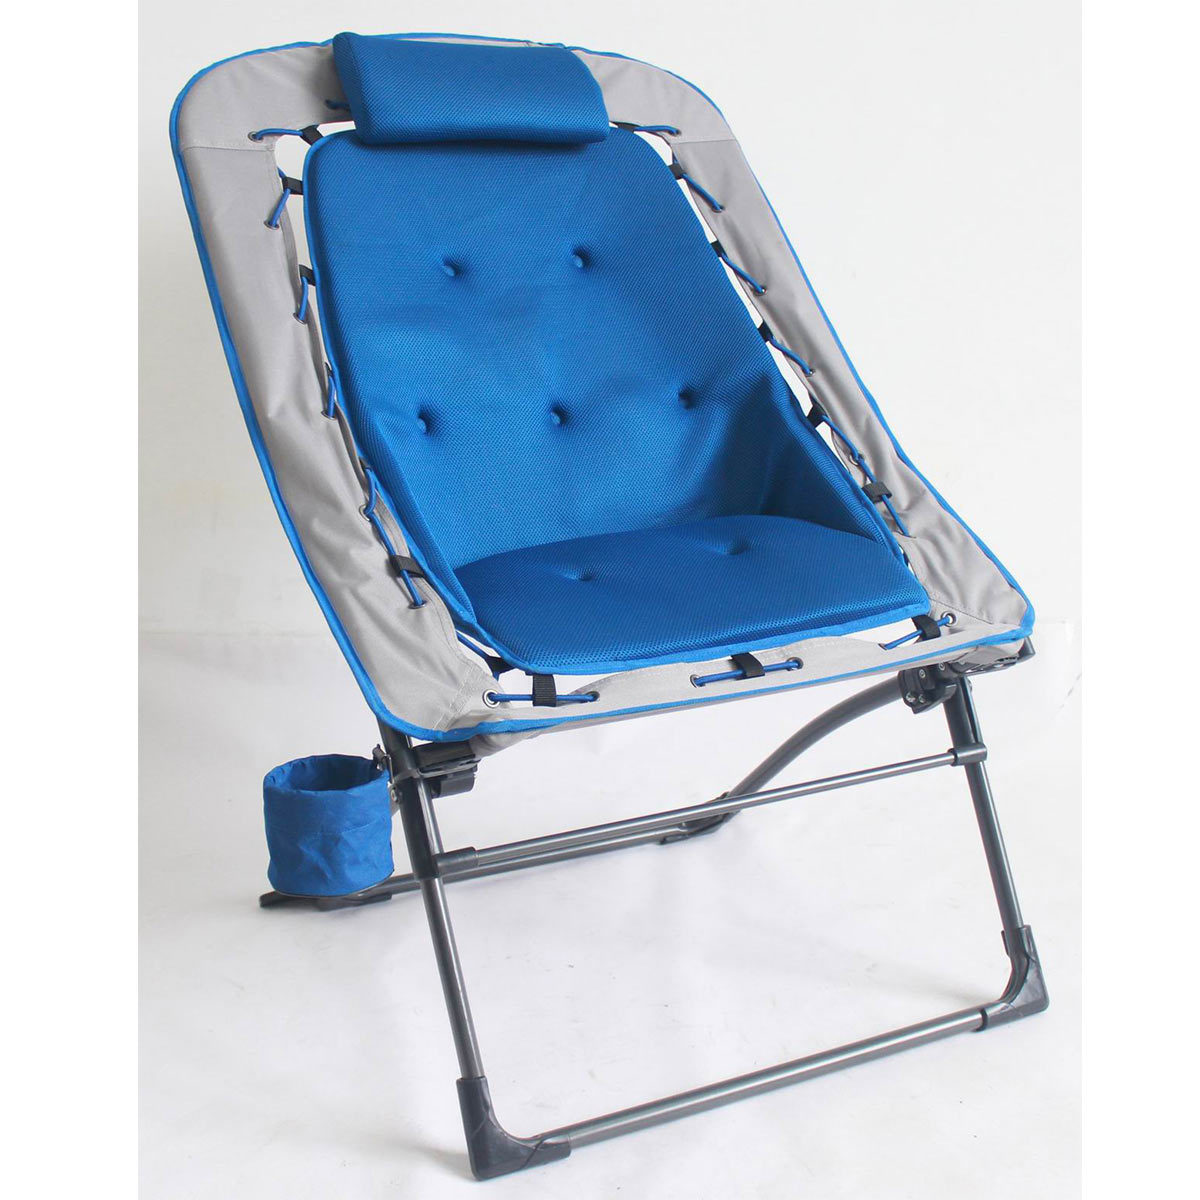 Stretcher Chair Foldable Rectangular Air Mesh Outdoor Bungee Chair Costco Uk